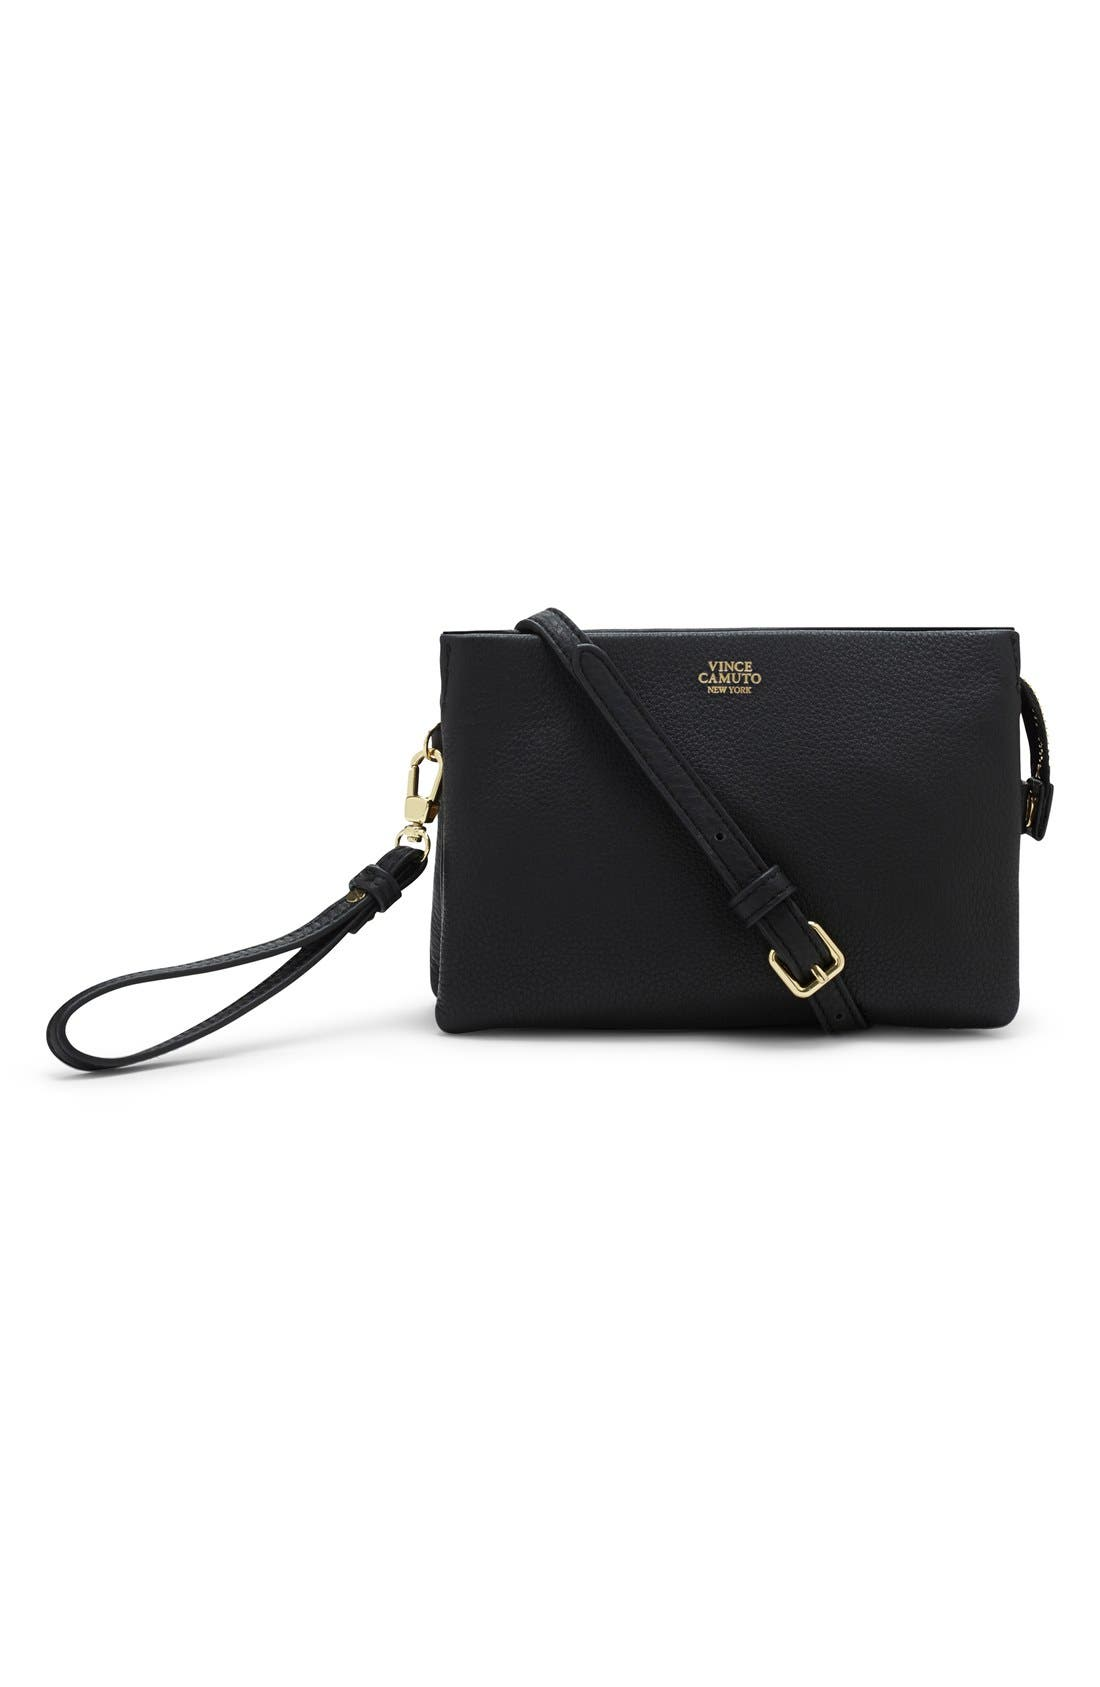 Alternate Image 1 Selected - Vince Camuto 'Cami' Leather Crossbody Bag